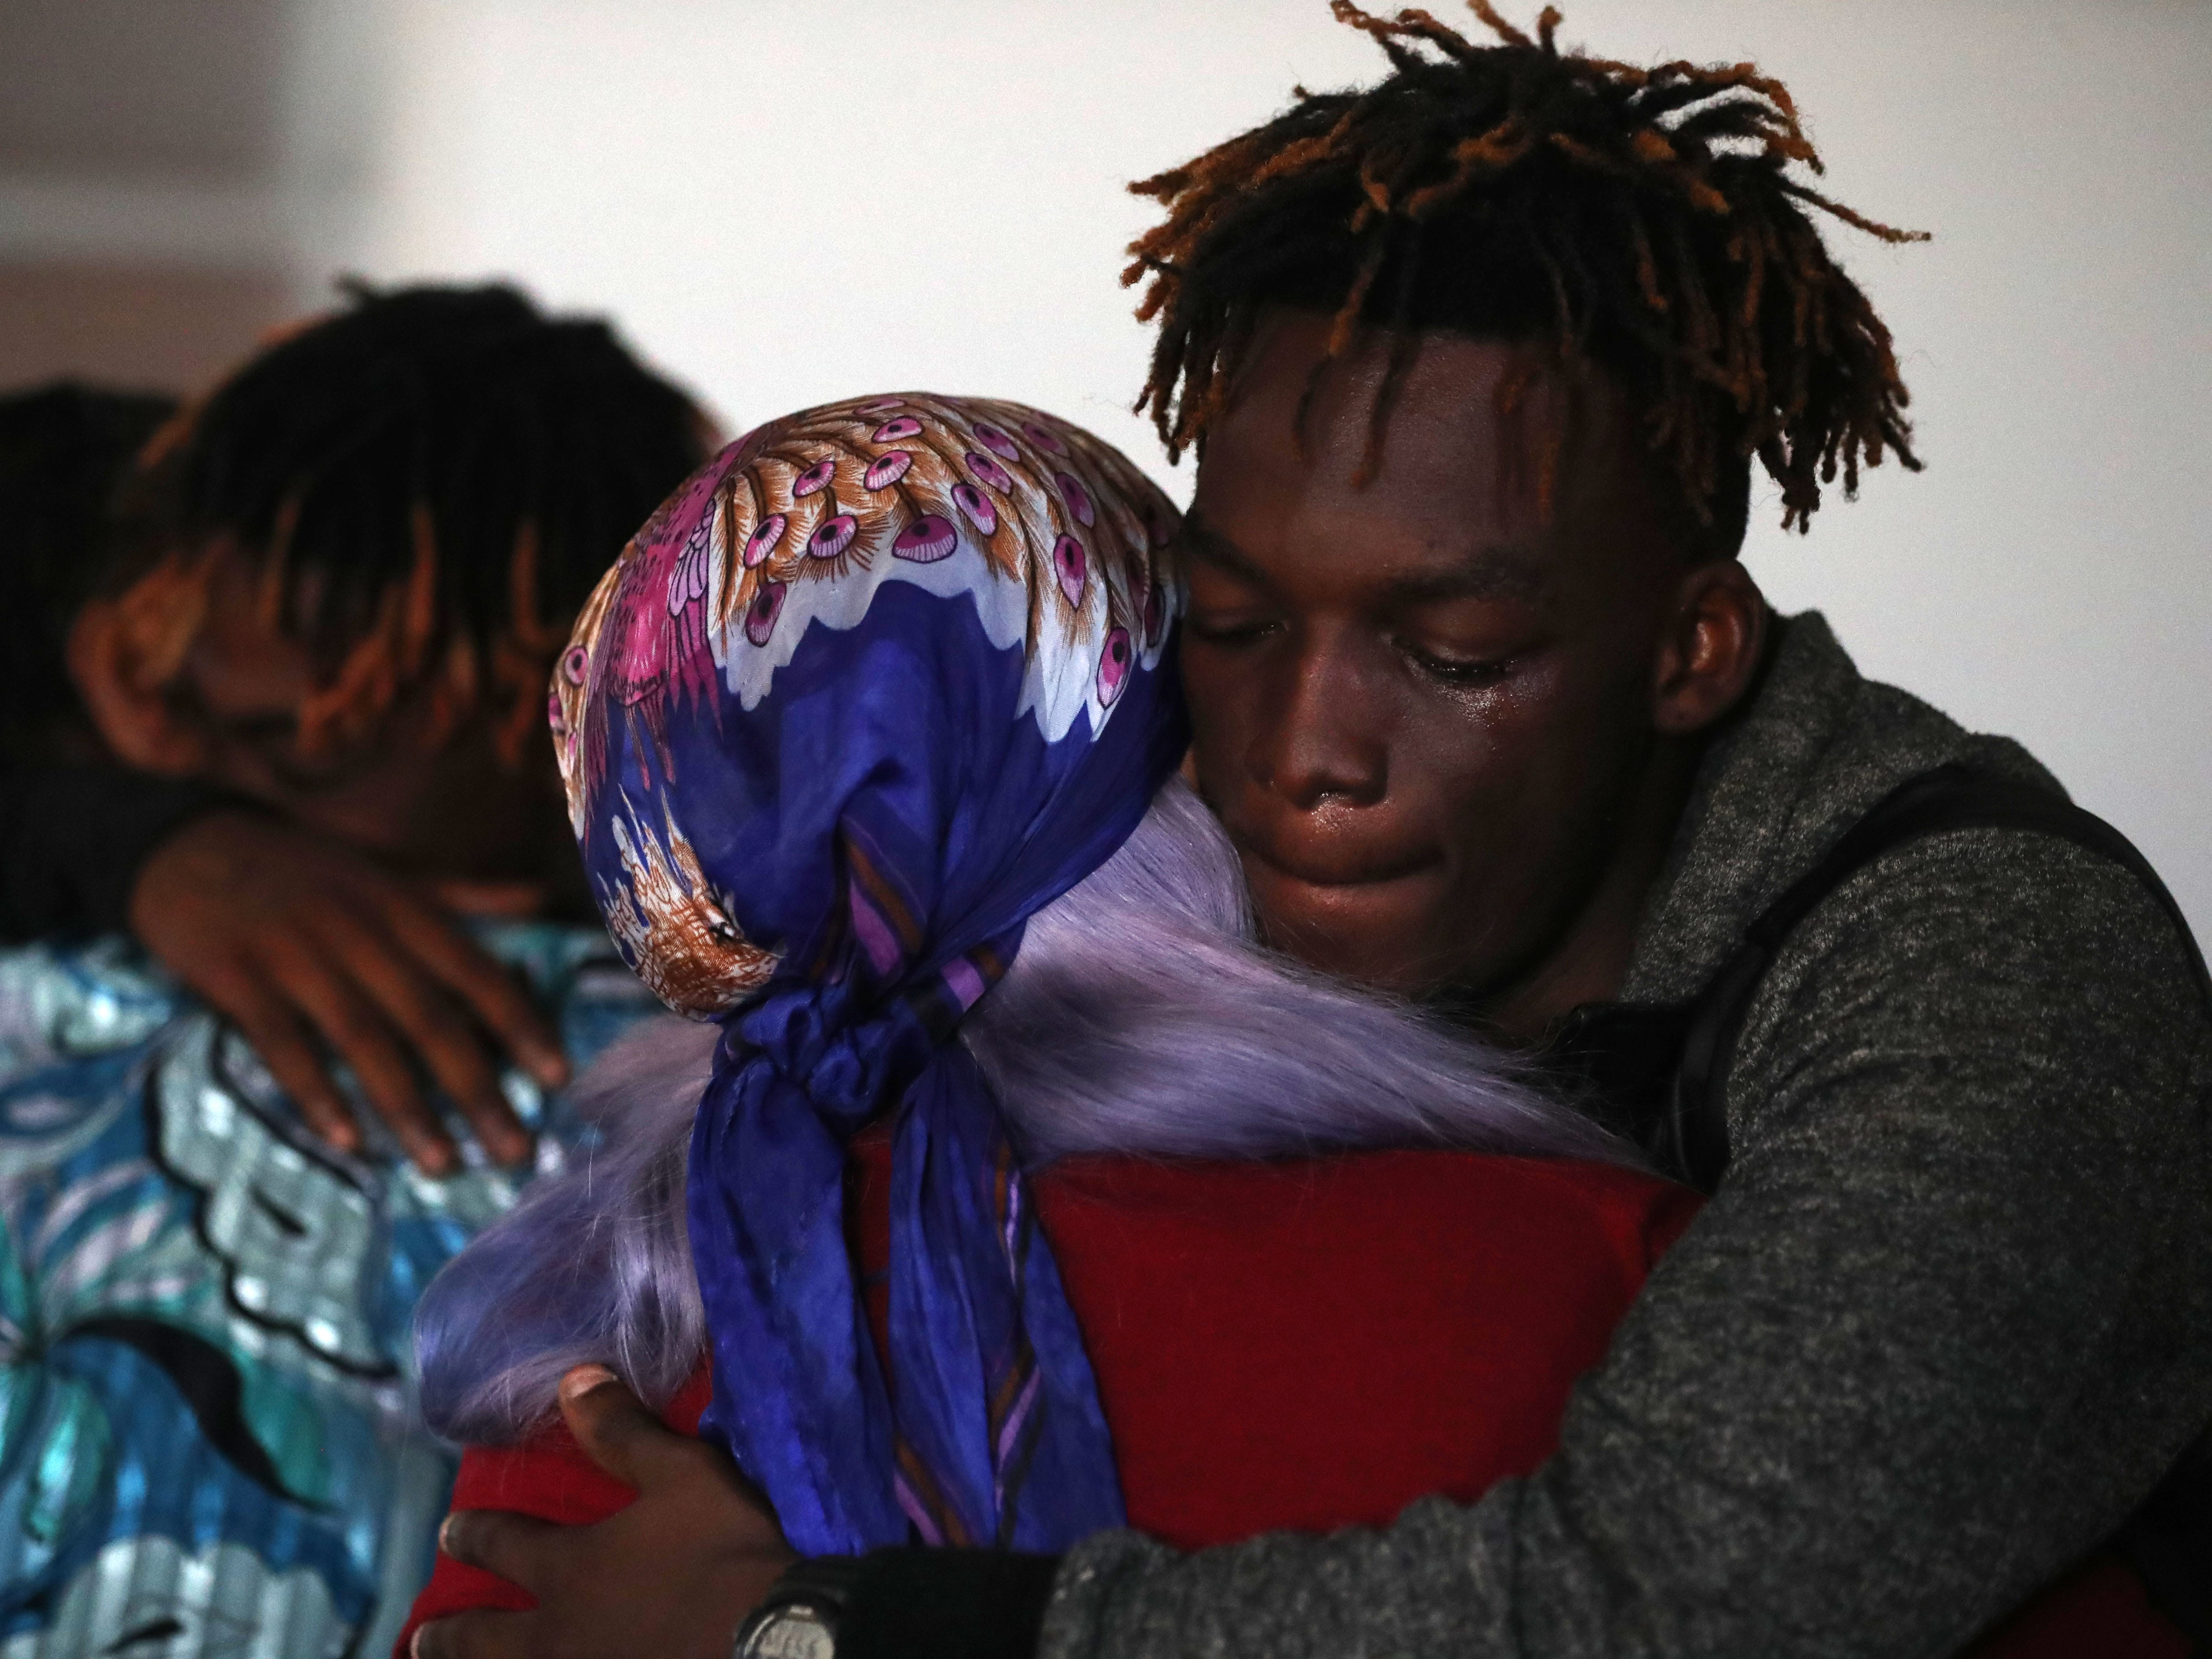 Tyrone Grant, son of Demashell Bass, a woman who could not receive medical attention and died during the hurricane, receives condolences from a member of the Dream, Vision, and Destiny (DVD) Ministry in Gretna, Fla., on Sunday Oct. 14, 2018, after Hurricane Michael hits the Florida panhandle.